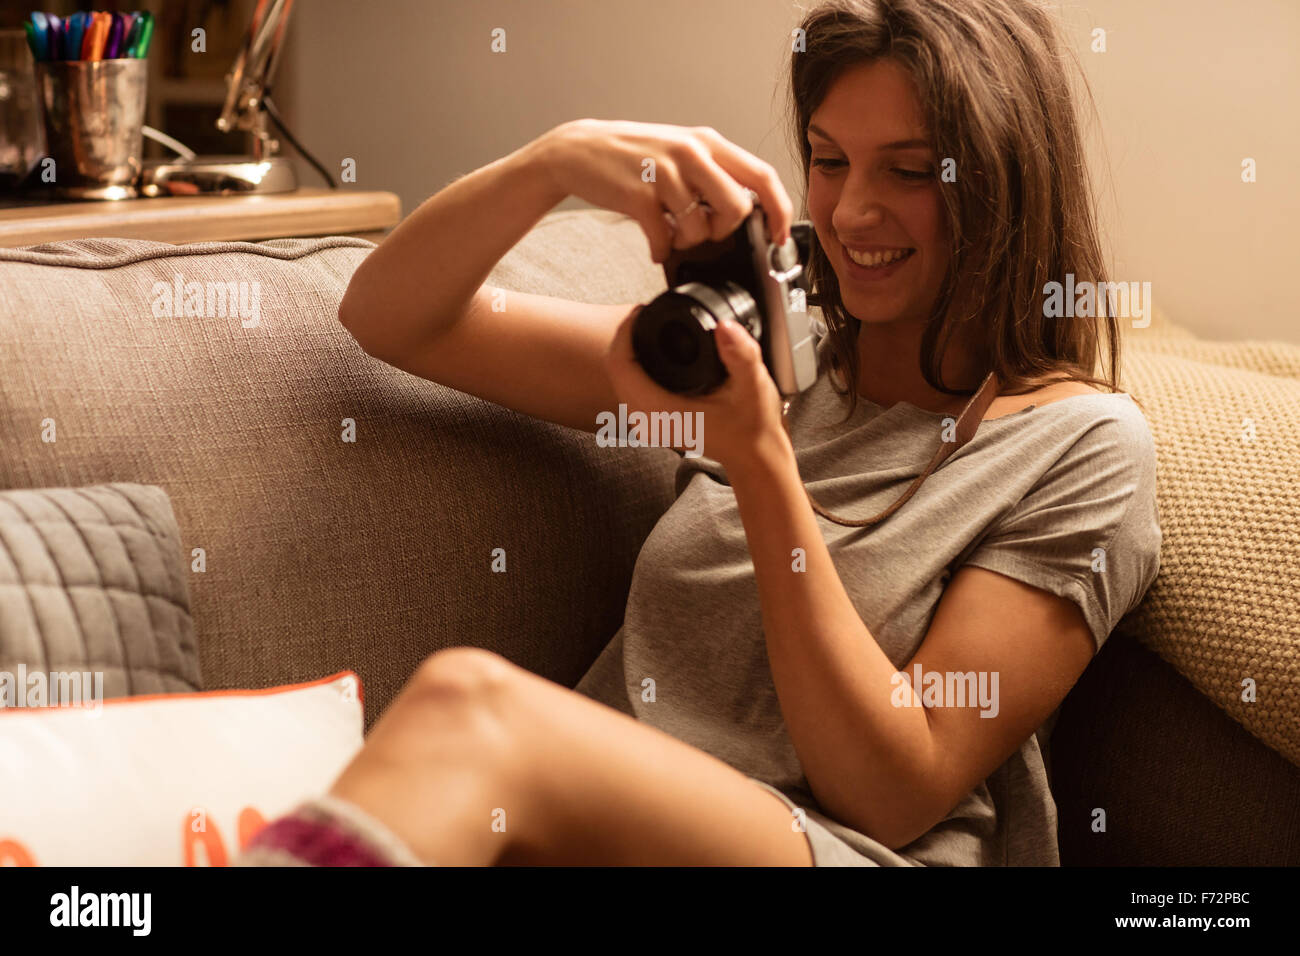 Smiling woman taking pictures with camera - Stock Image